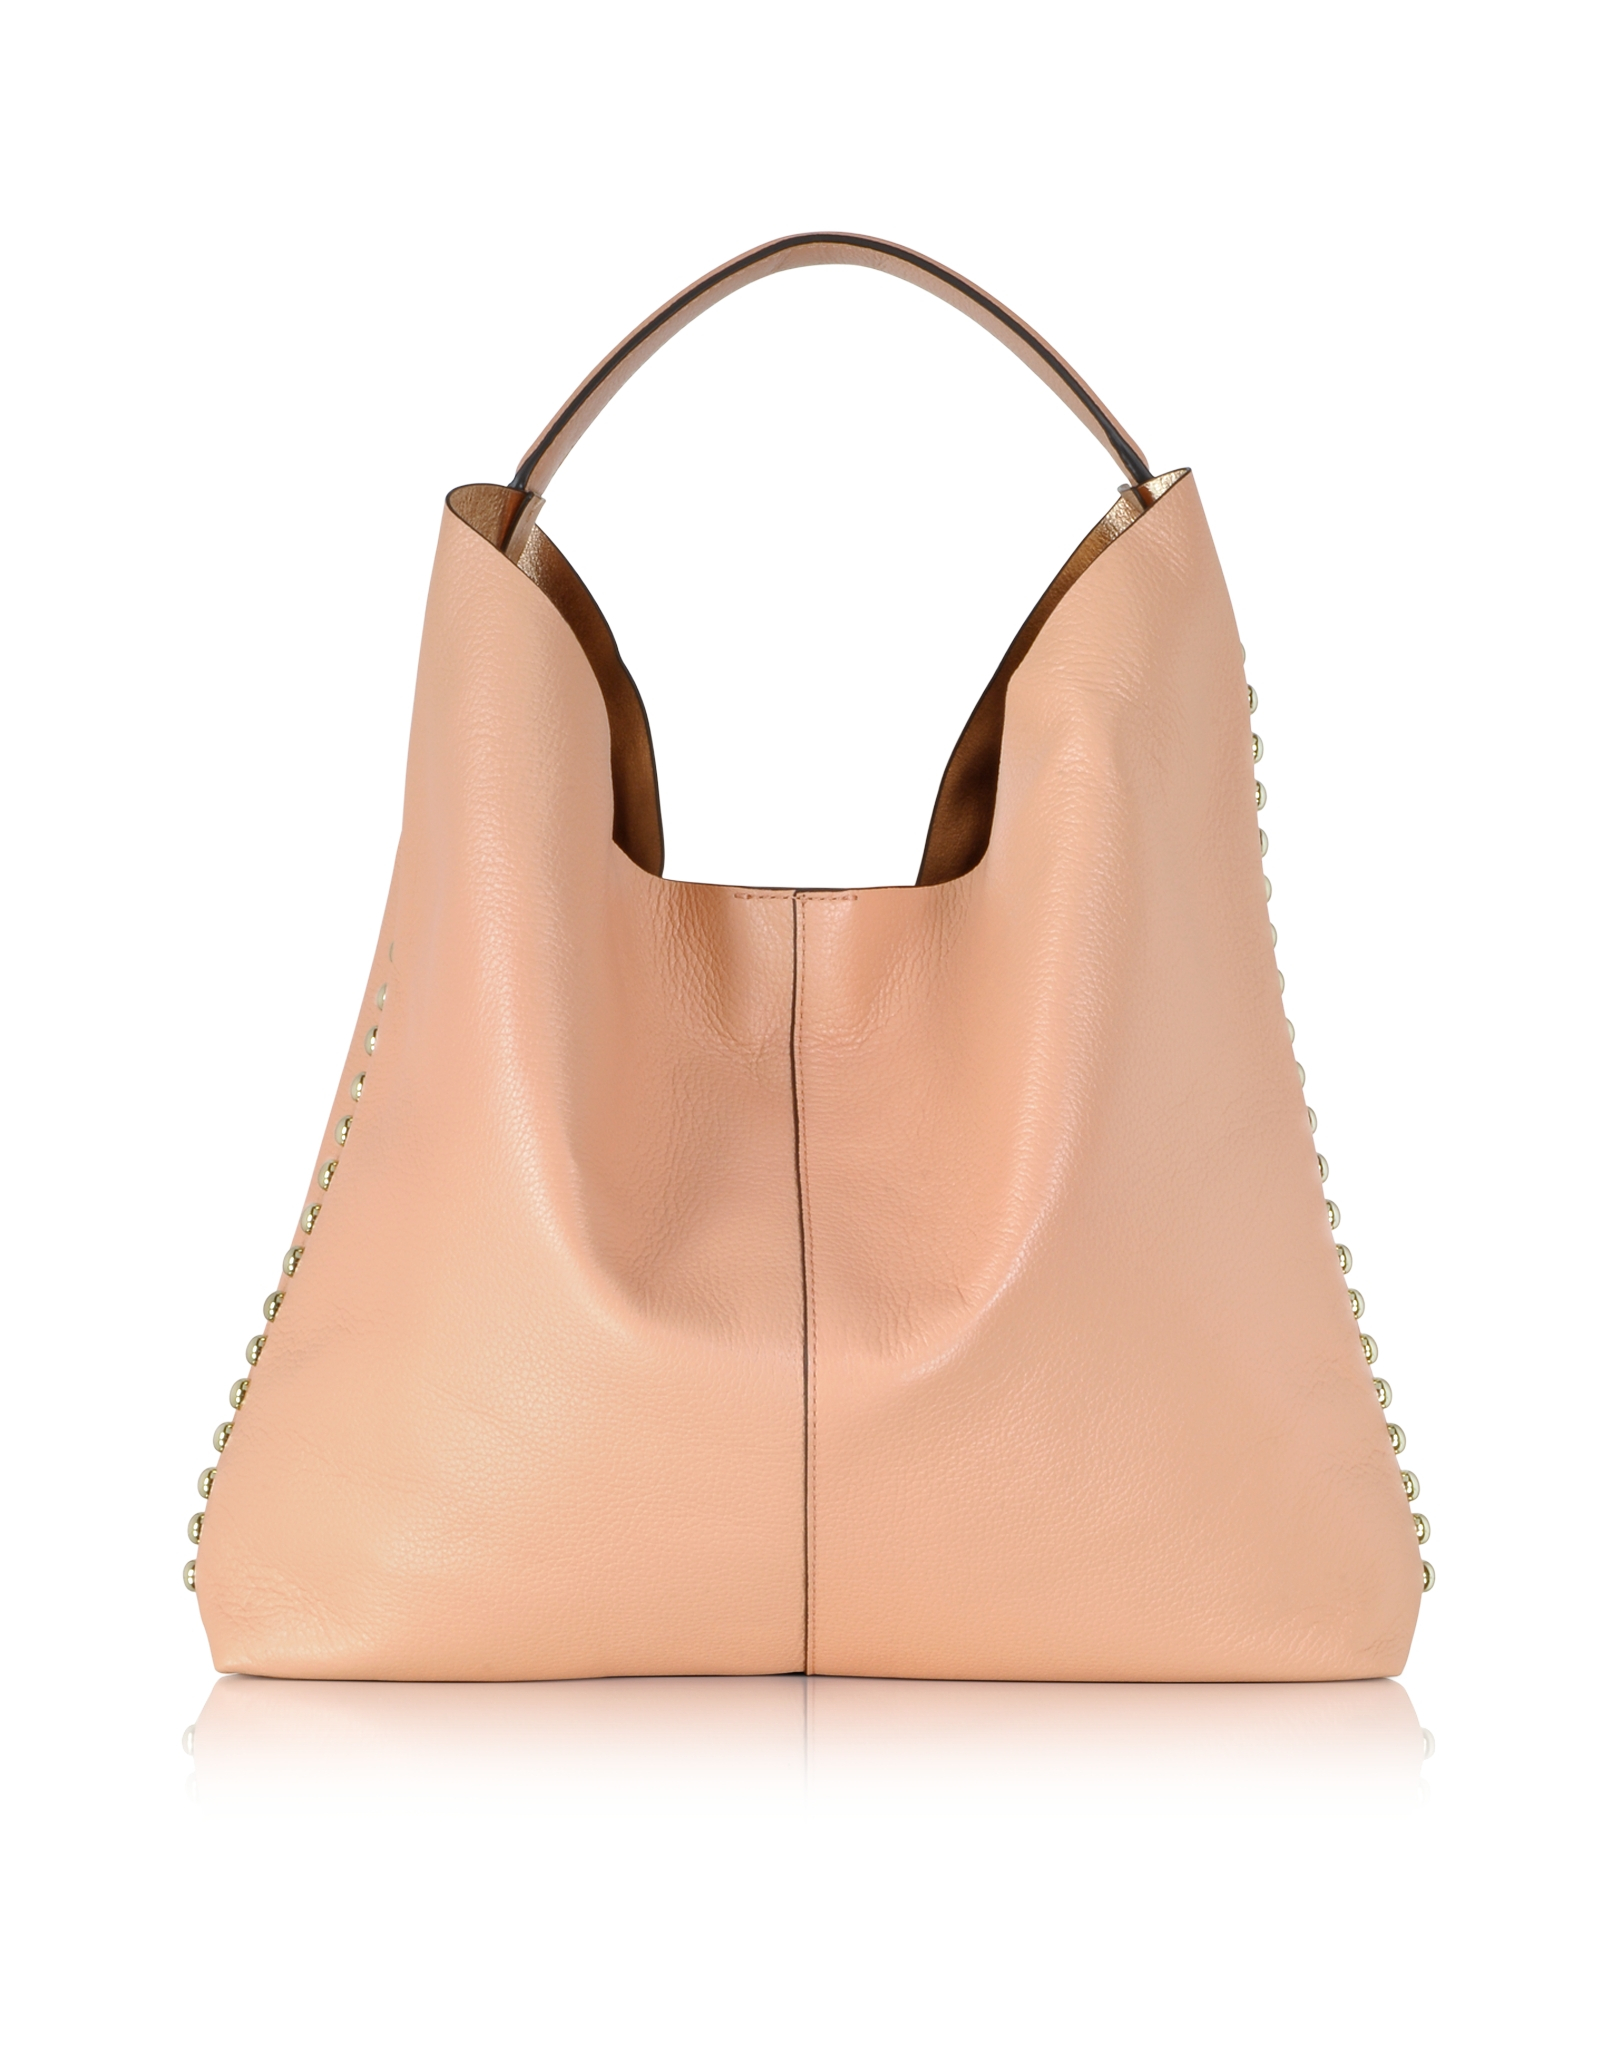 Rebecca minkoff Unlined Apricot Leather Hobo Bag in Metallic | Lyst